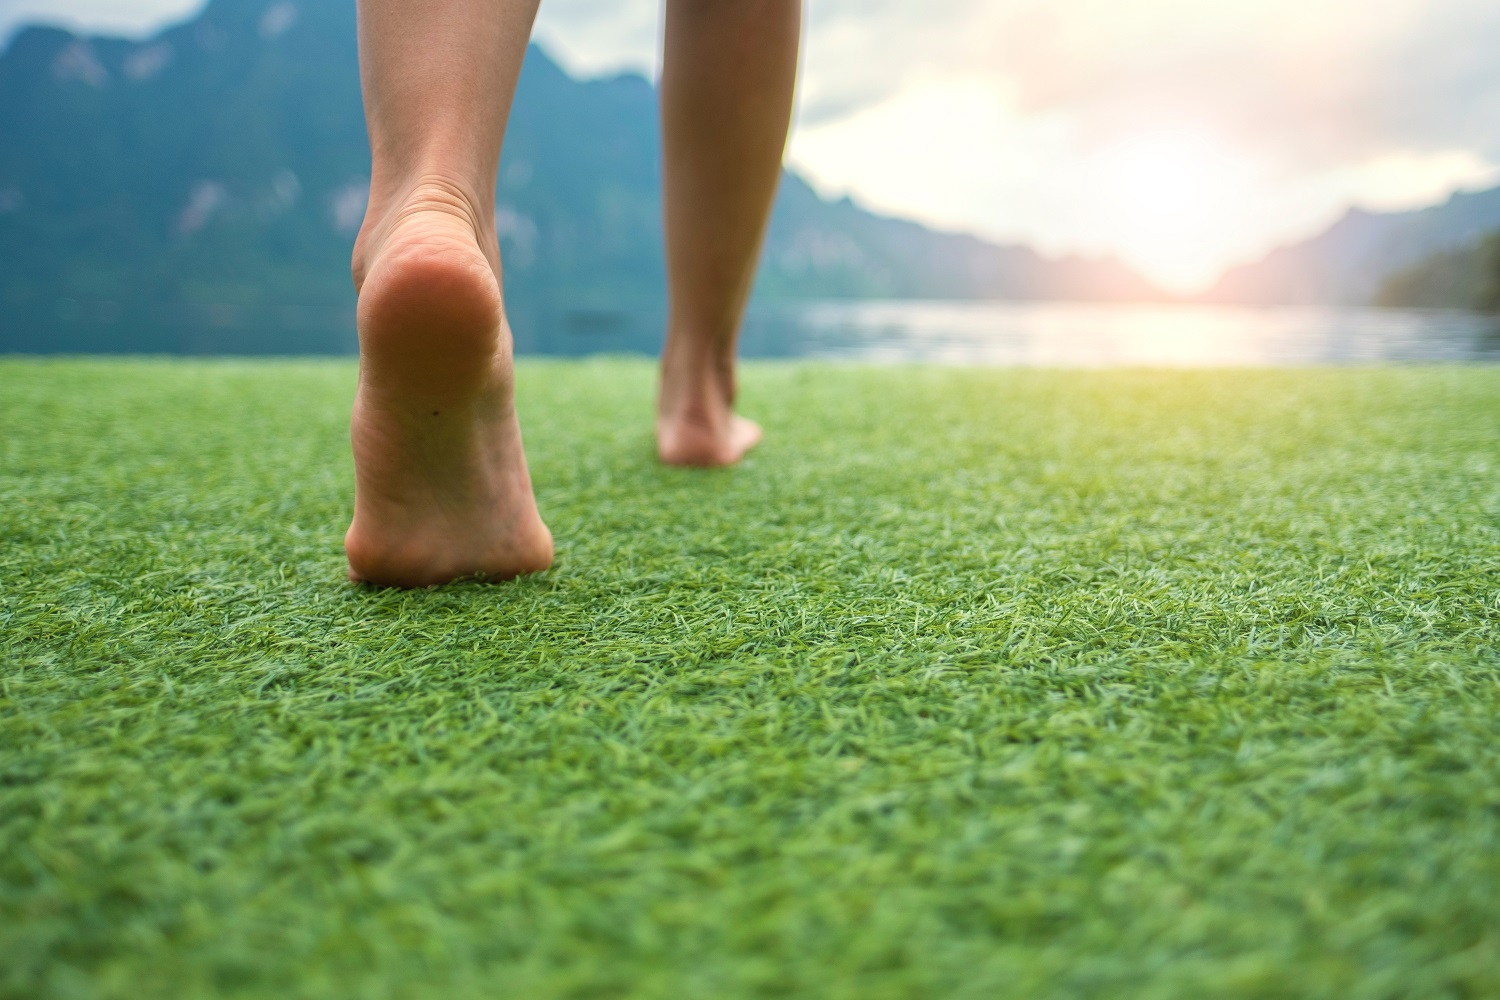 grounding walking feet on grass